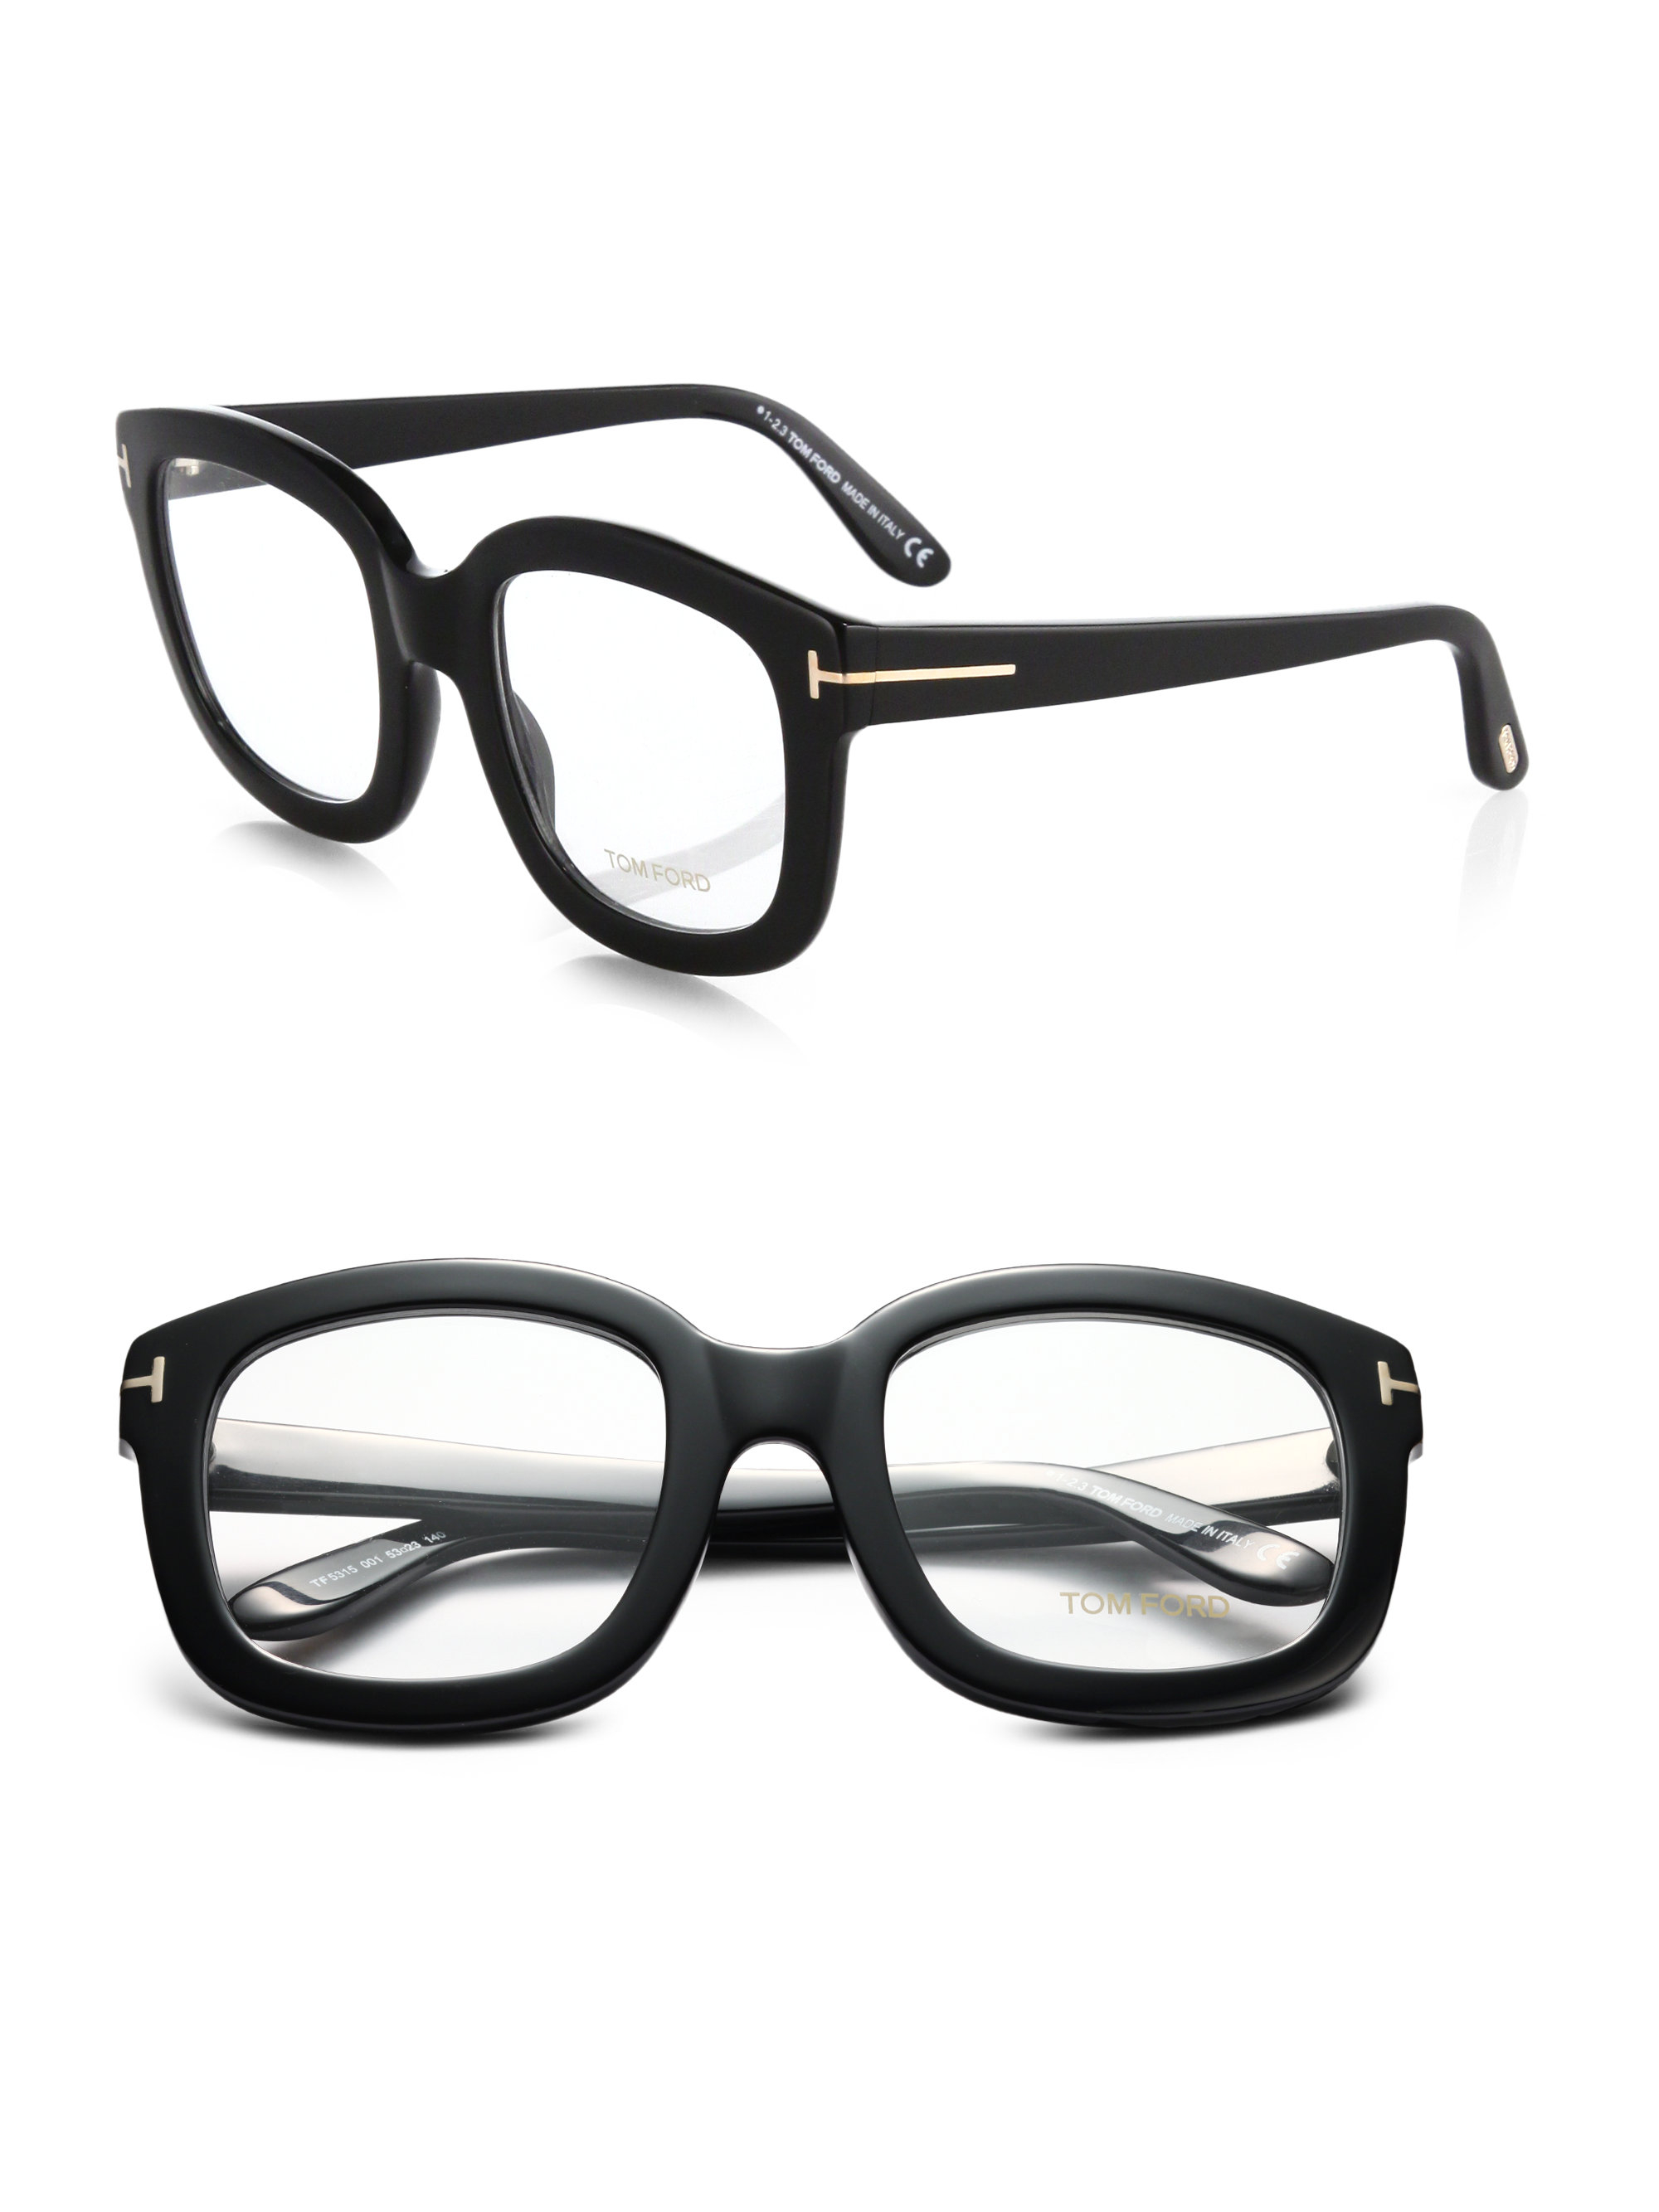 aff5dc2a6810 Lyst - Tom Ford Oversized Acetate Eye Glasses in Black